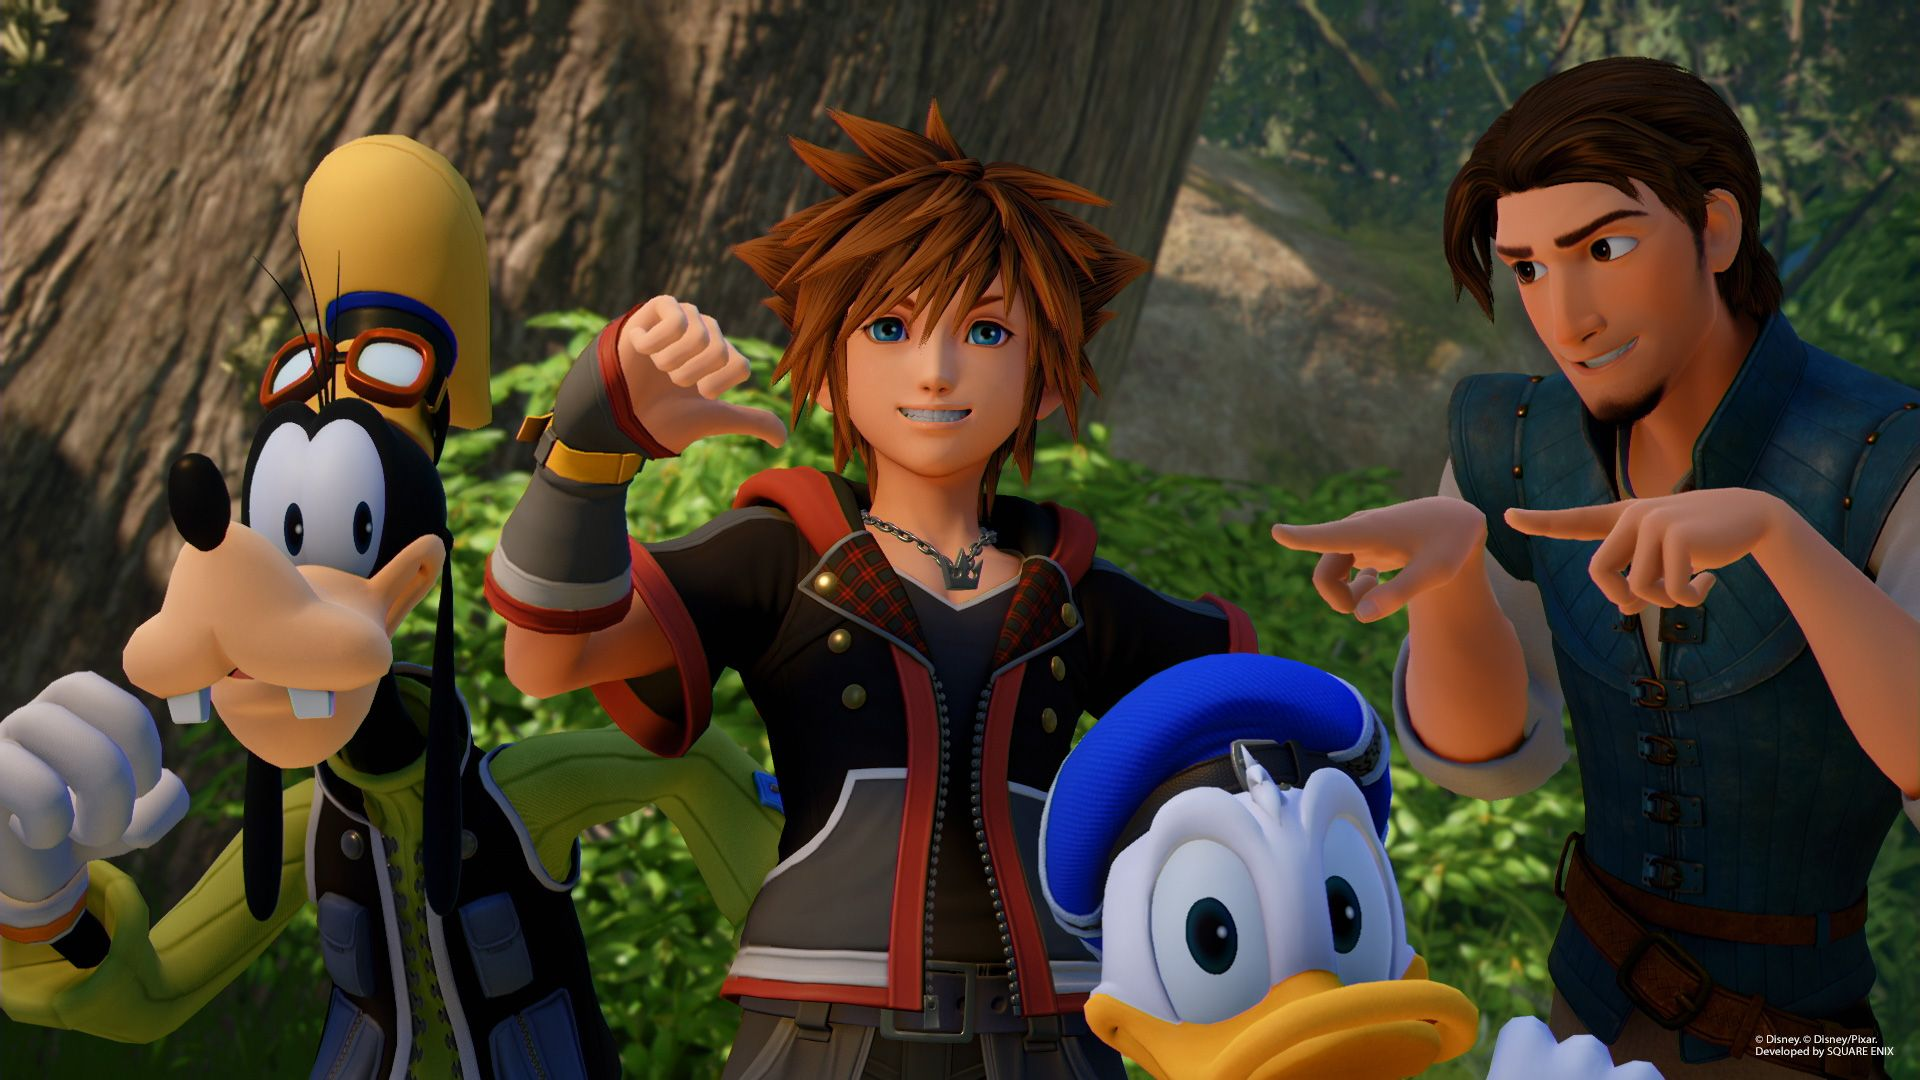 Cute Sakura Wallpaper Kingdom Hearts 3 Goes Gold With Extended Trailer As